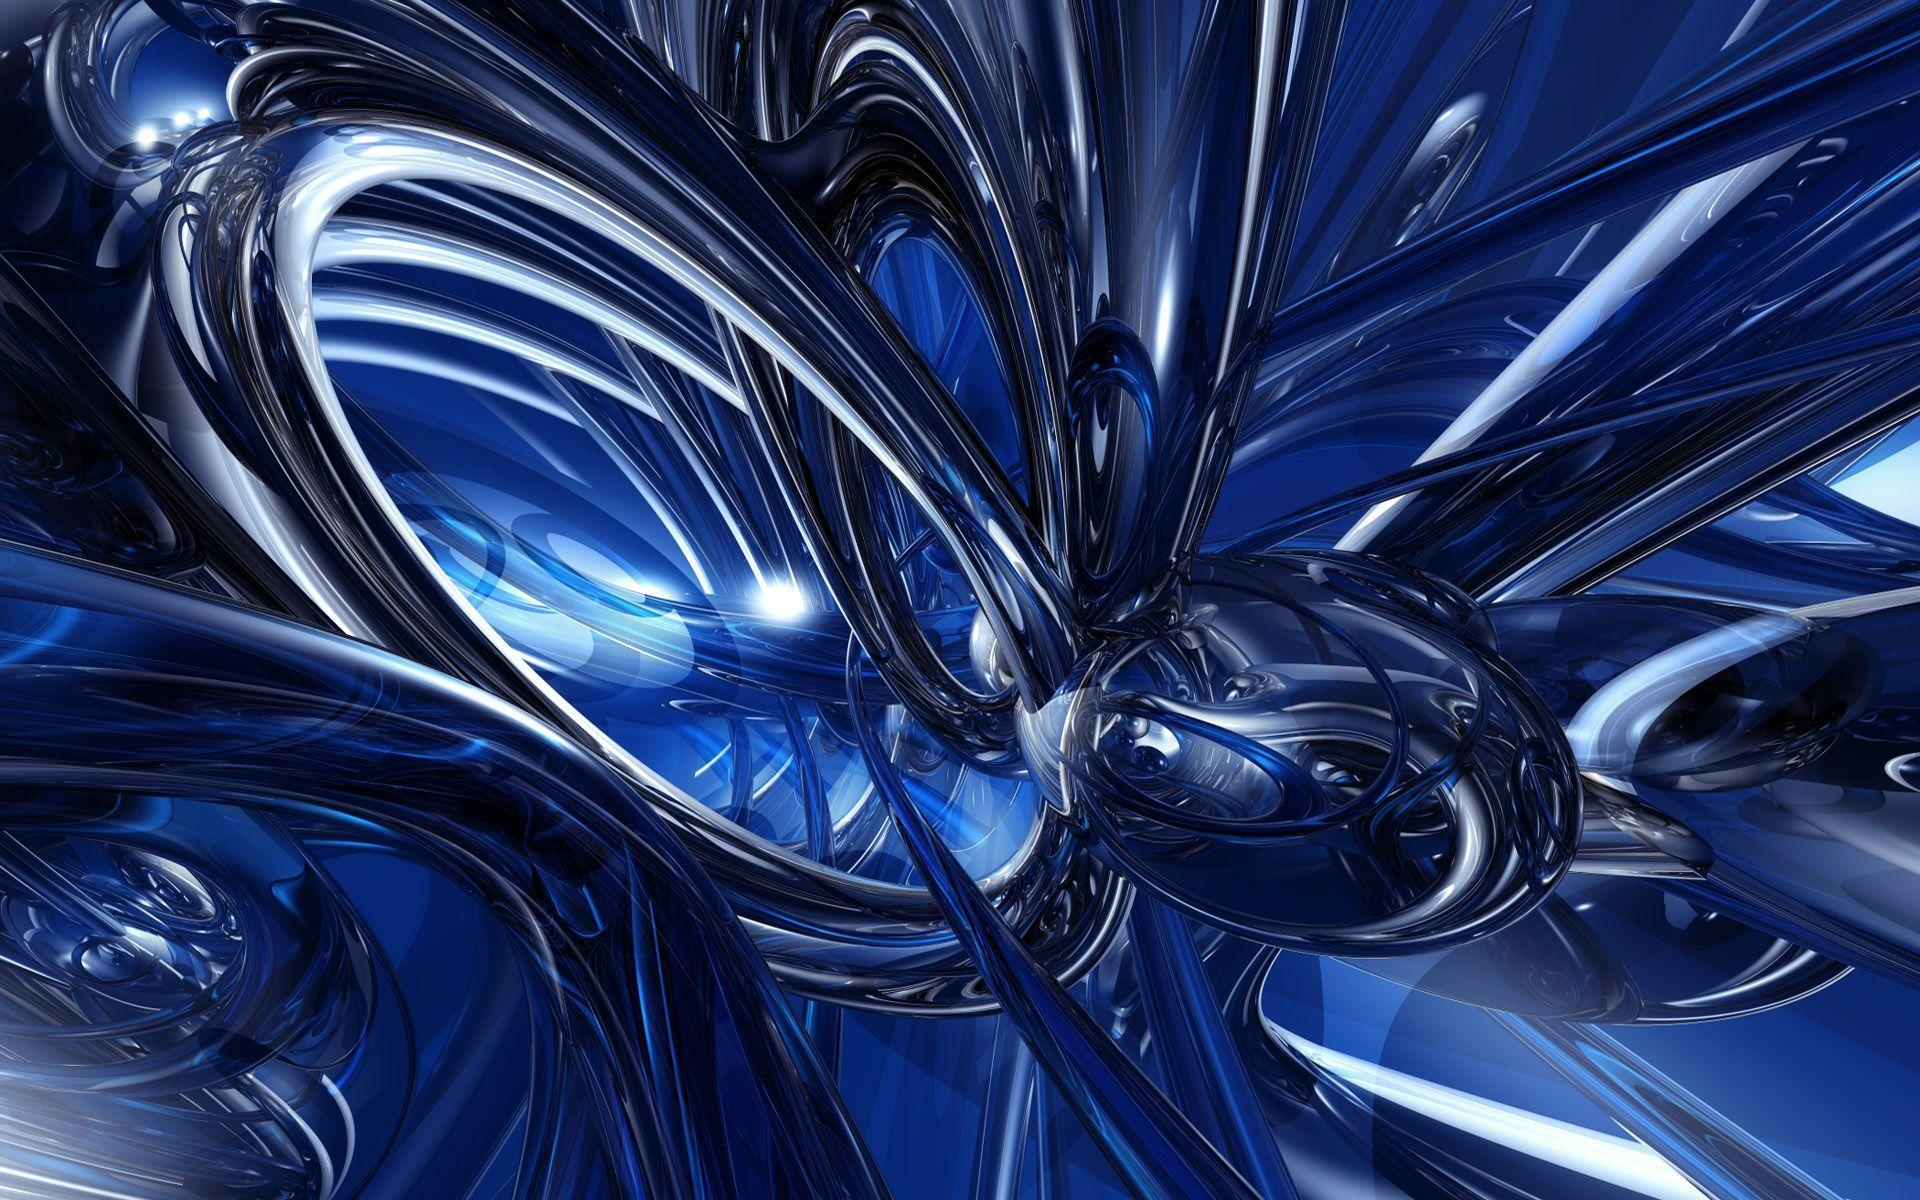 Abstract Blue Wallpapers